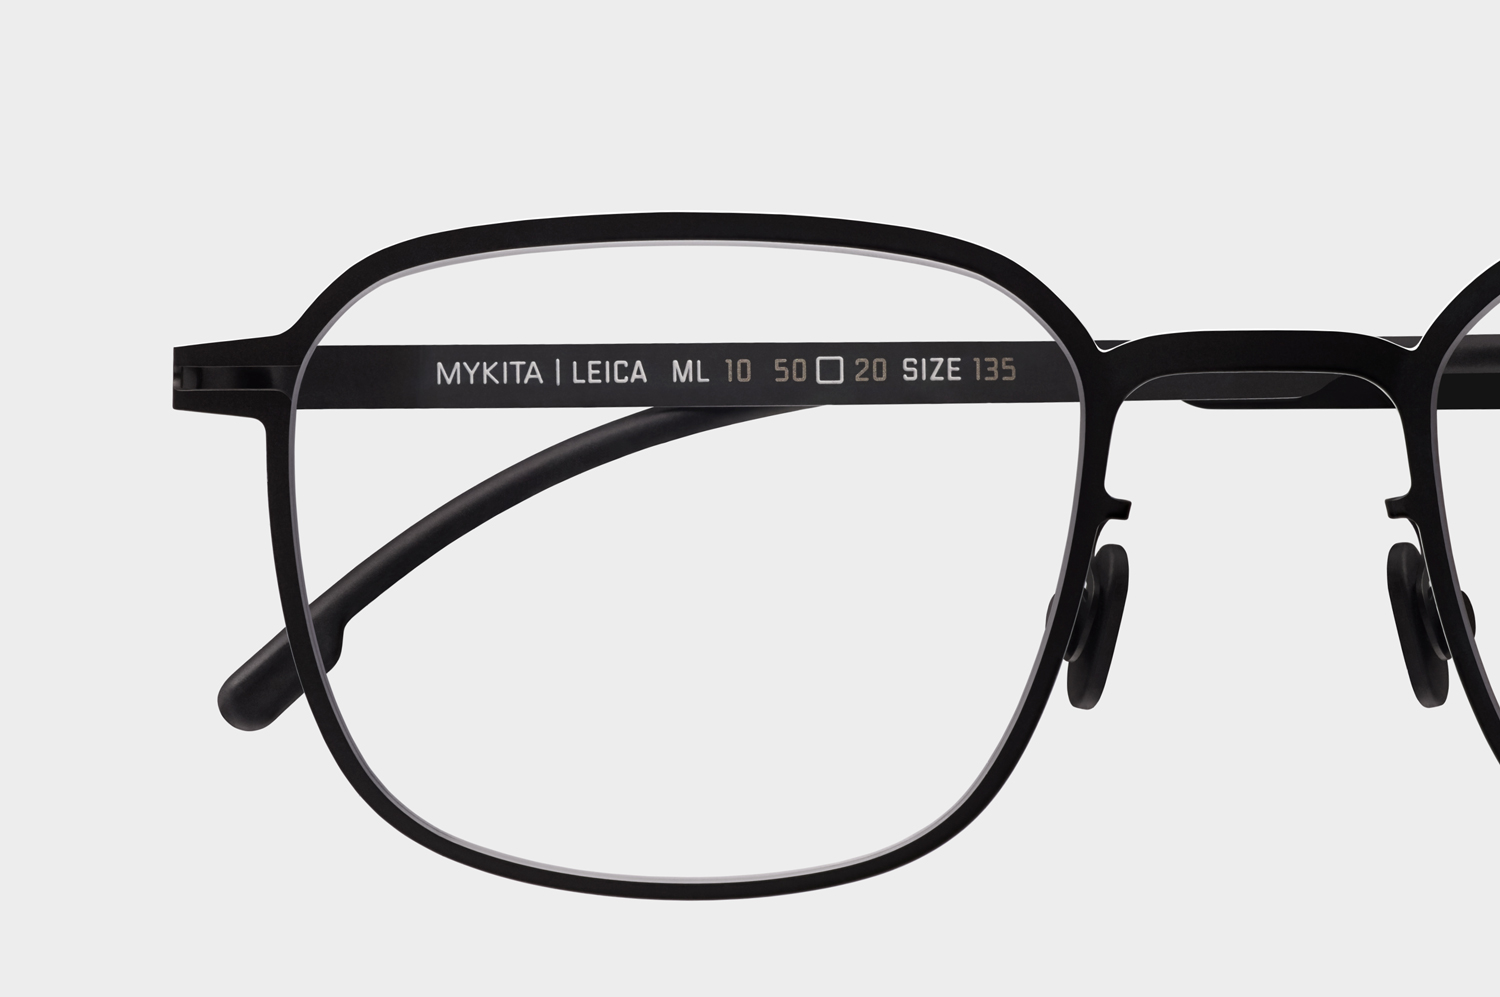 MYKITA_Leica_OPTICAL_ML10_Landscape